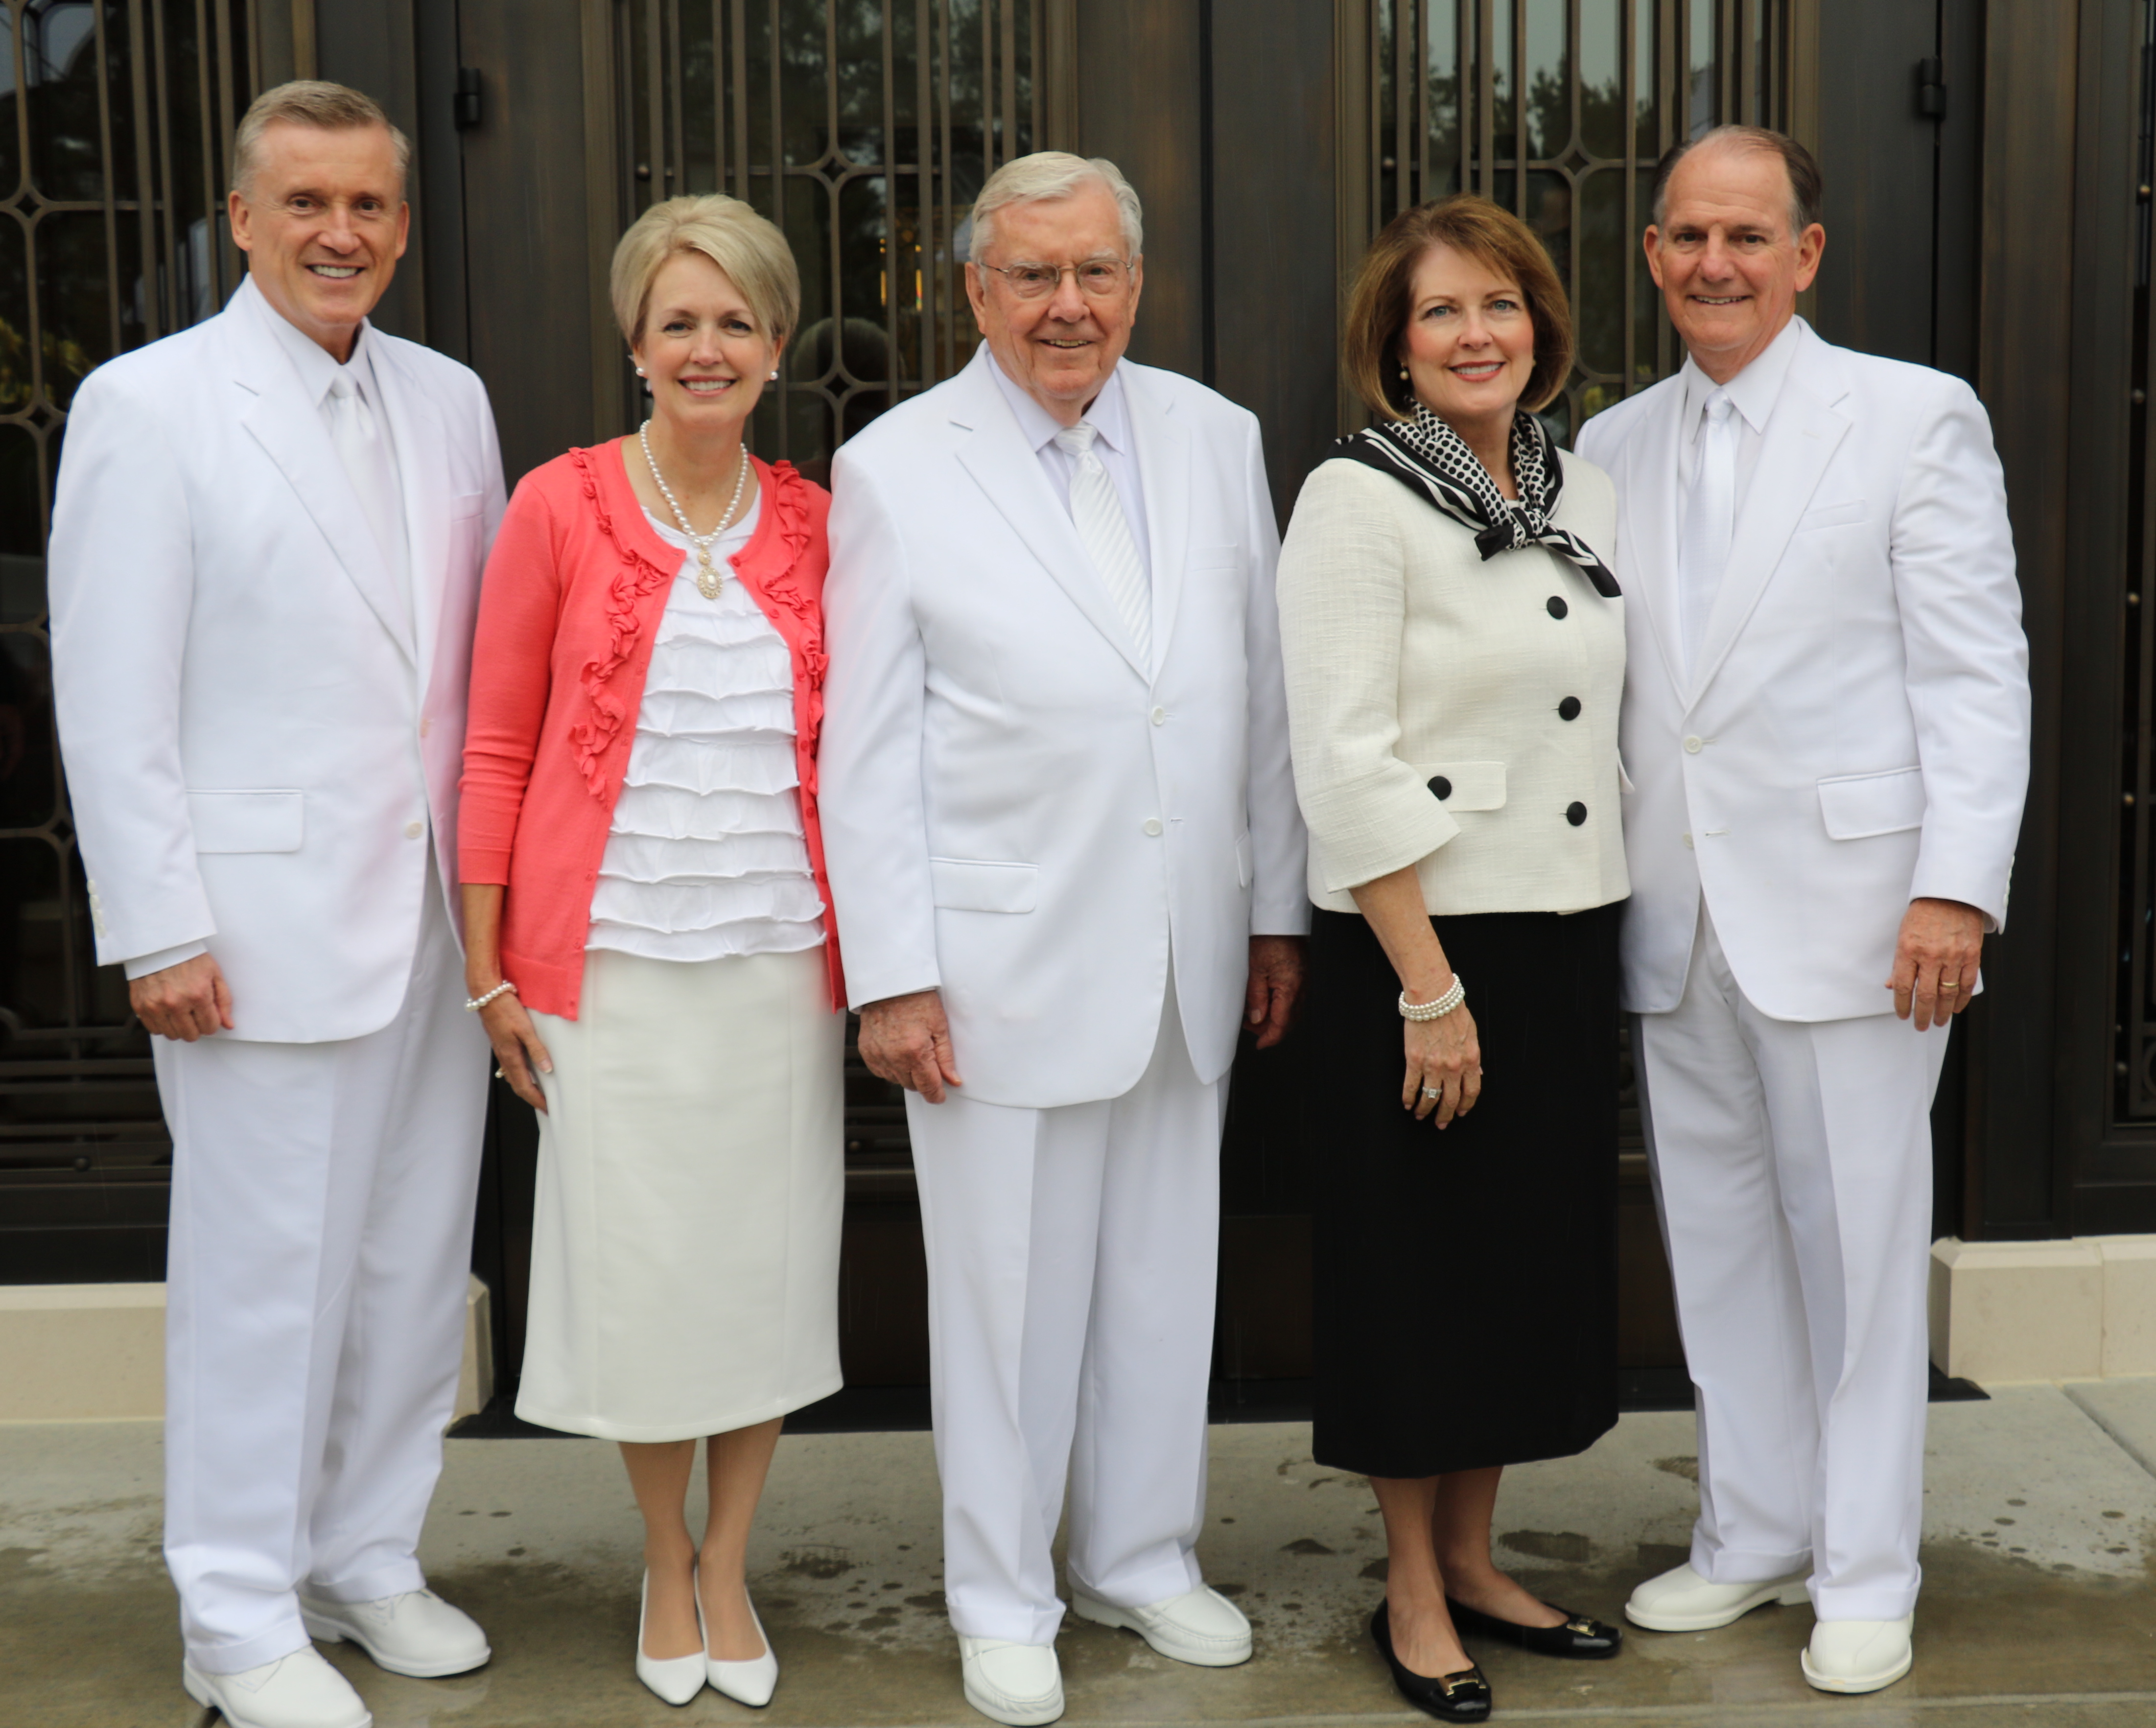 The visiting Brethren and their wives who participated in the Oct. 13, 2019, rededication of the Raleigh North Carolina Temple included, from left, Elder Kevin R. Duncan, Sister Nancy Duncan, President M. Russell Ballard, Sister Jennie Martino and Elder James B. Martino.